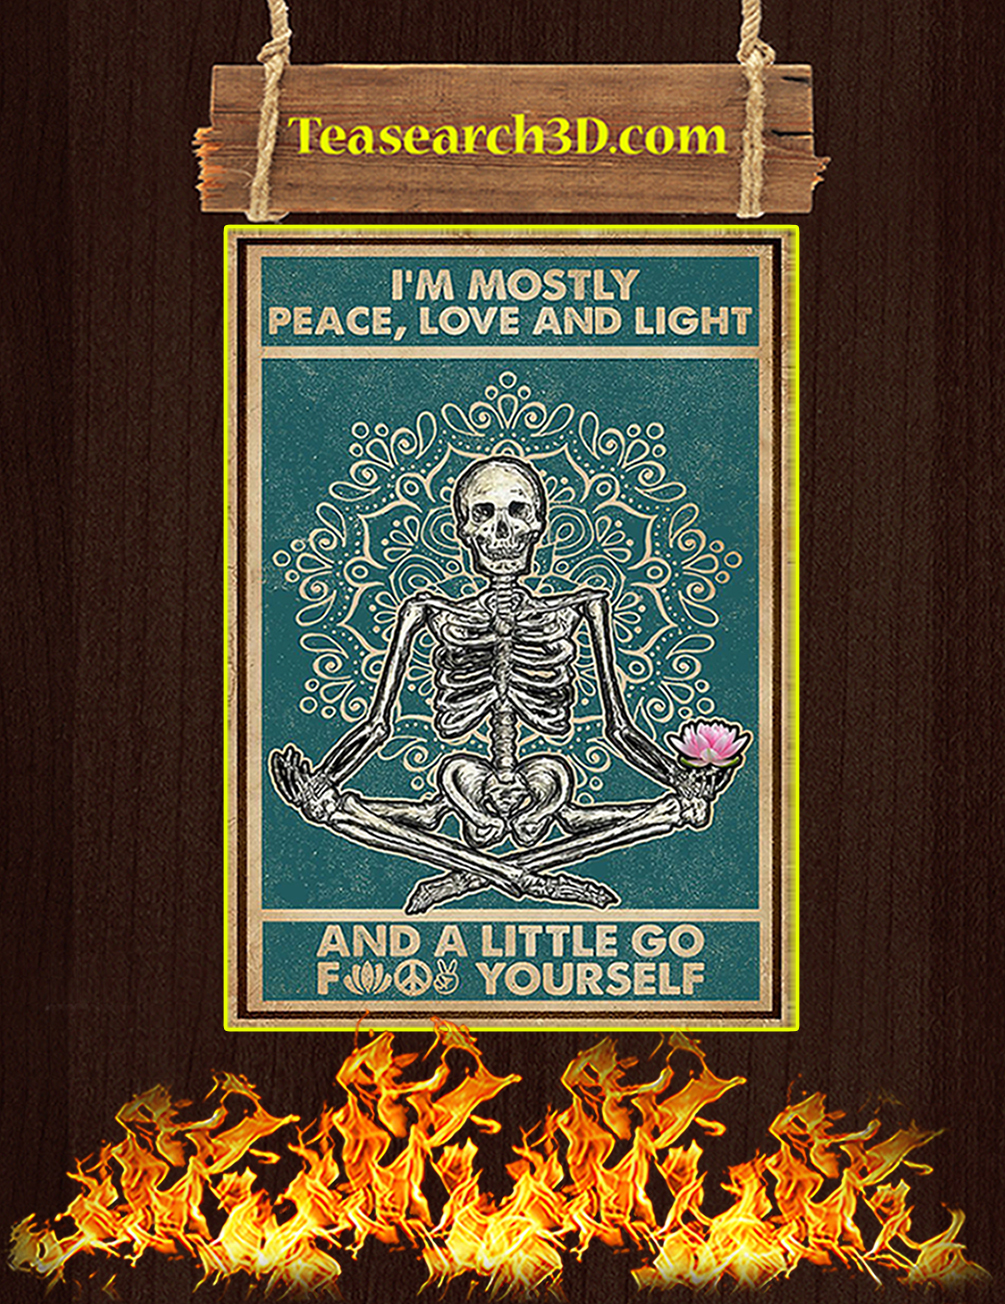 Skeleton yoga I'm mostly peace love and light poster